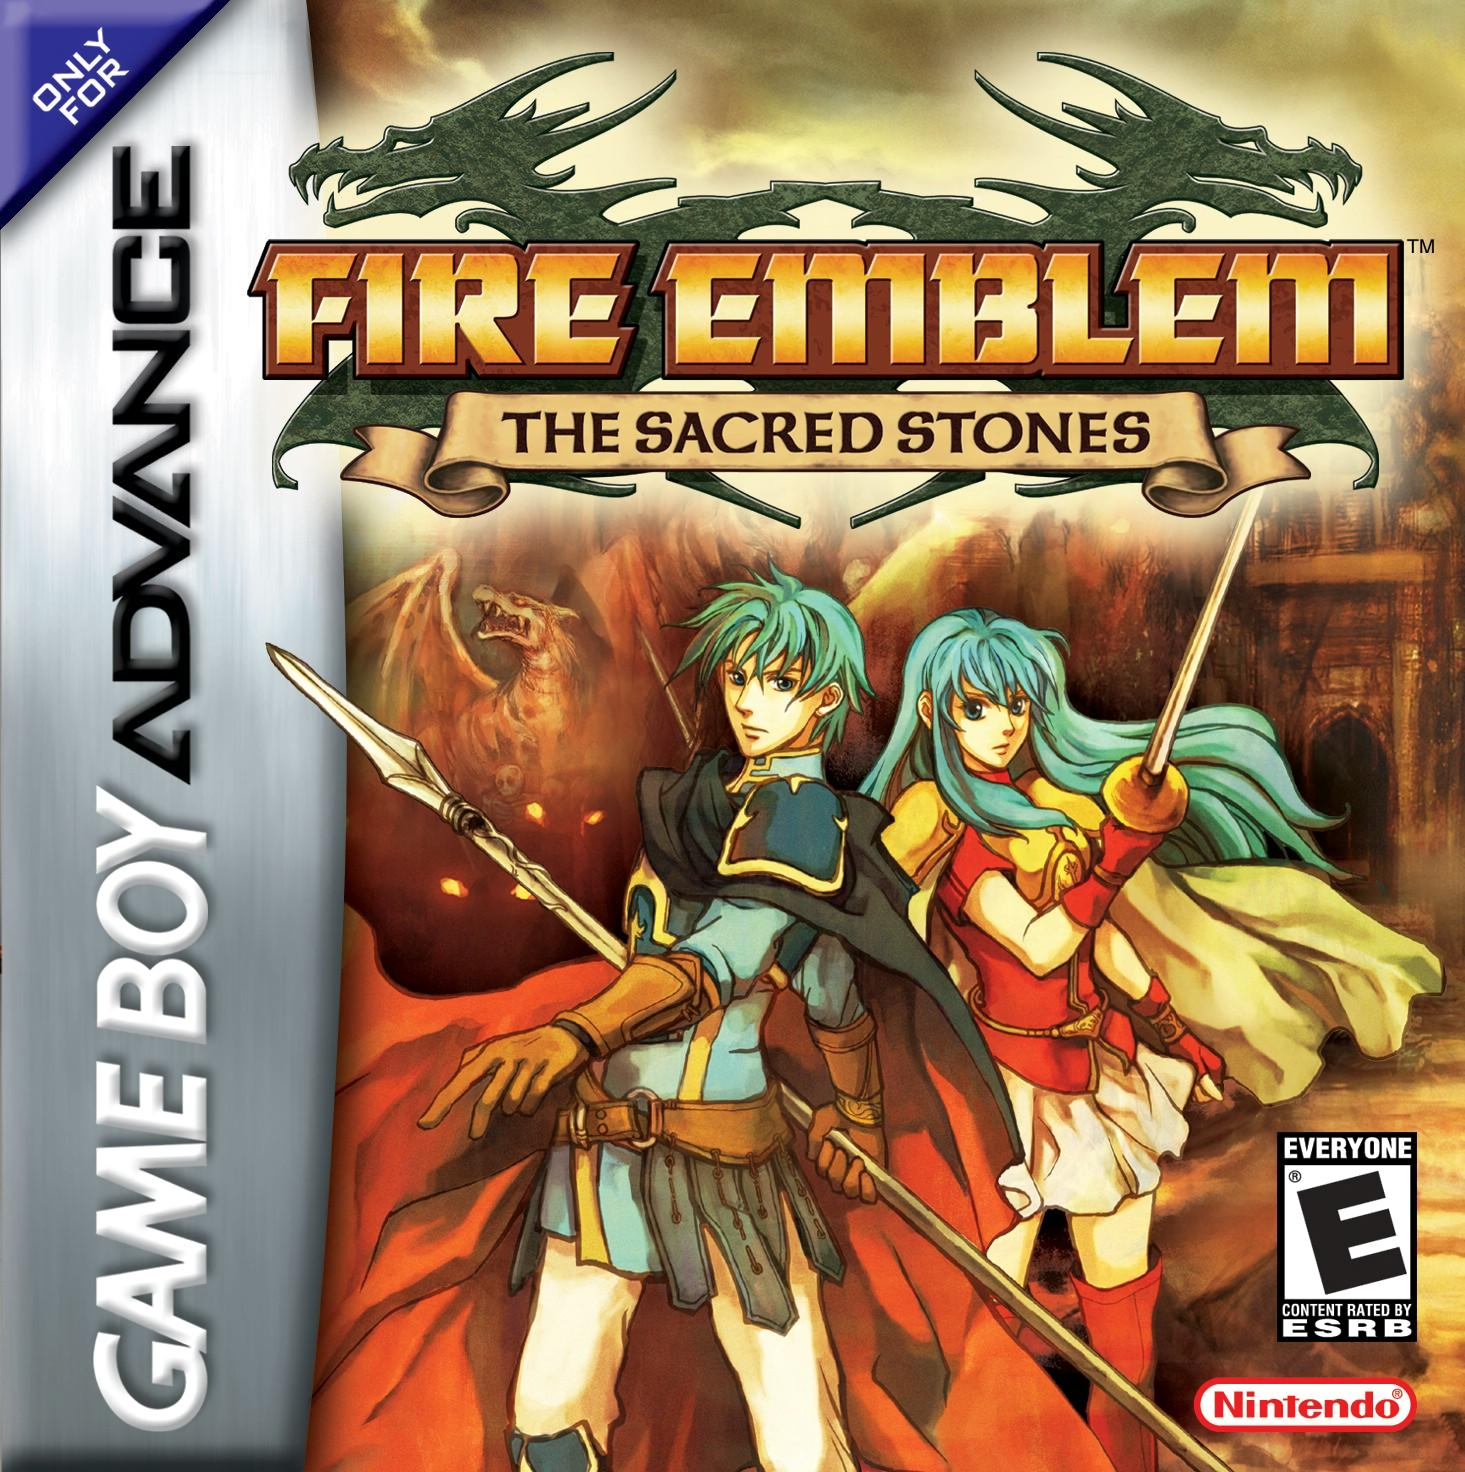 Fire Emblem: The Sacred Stones game art